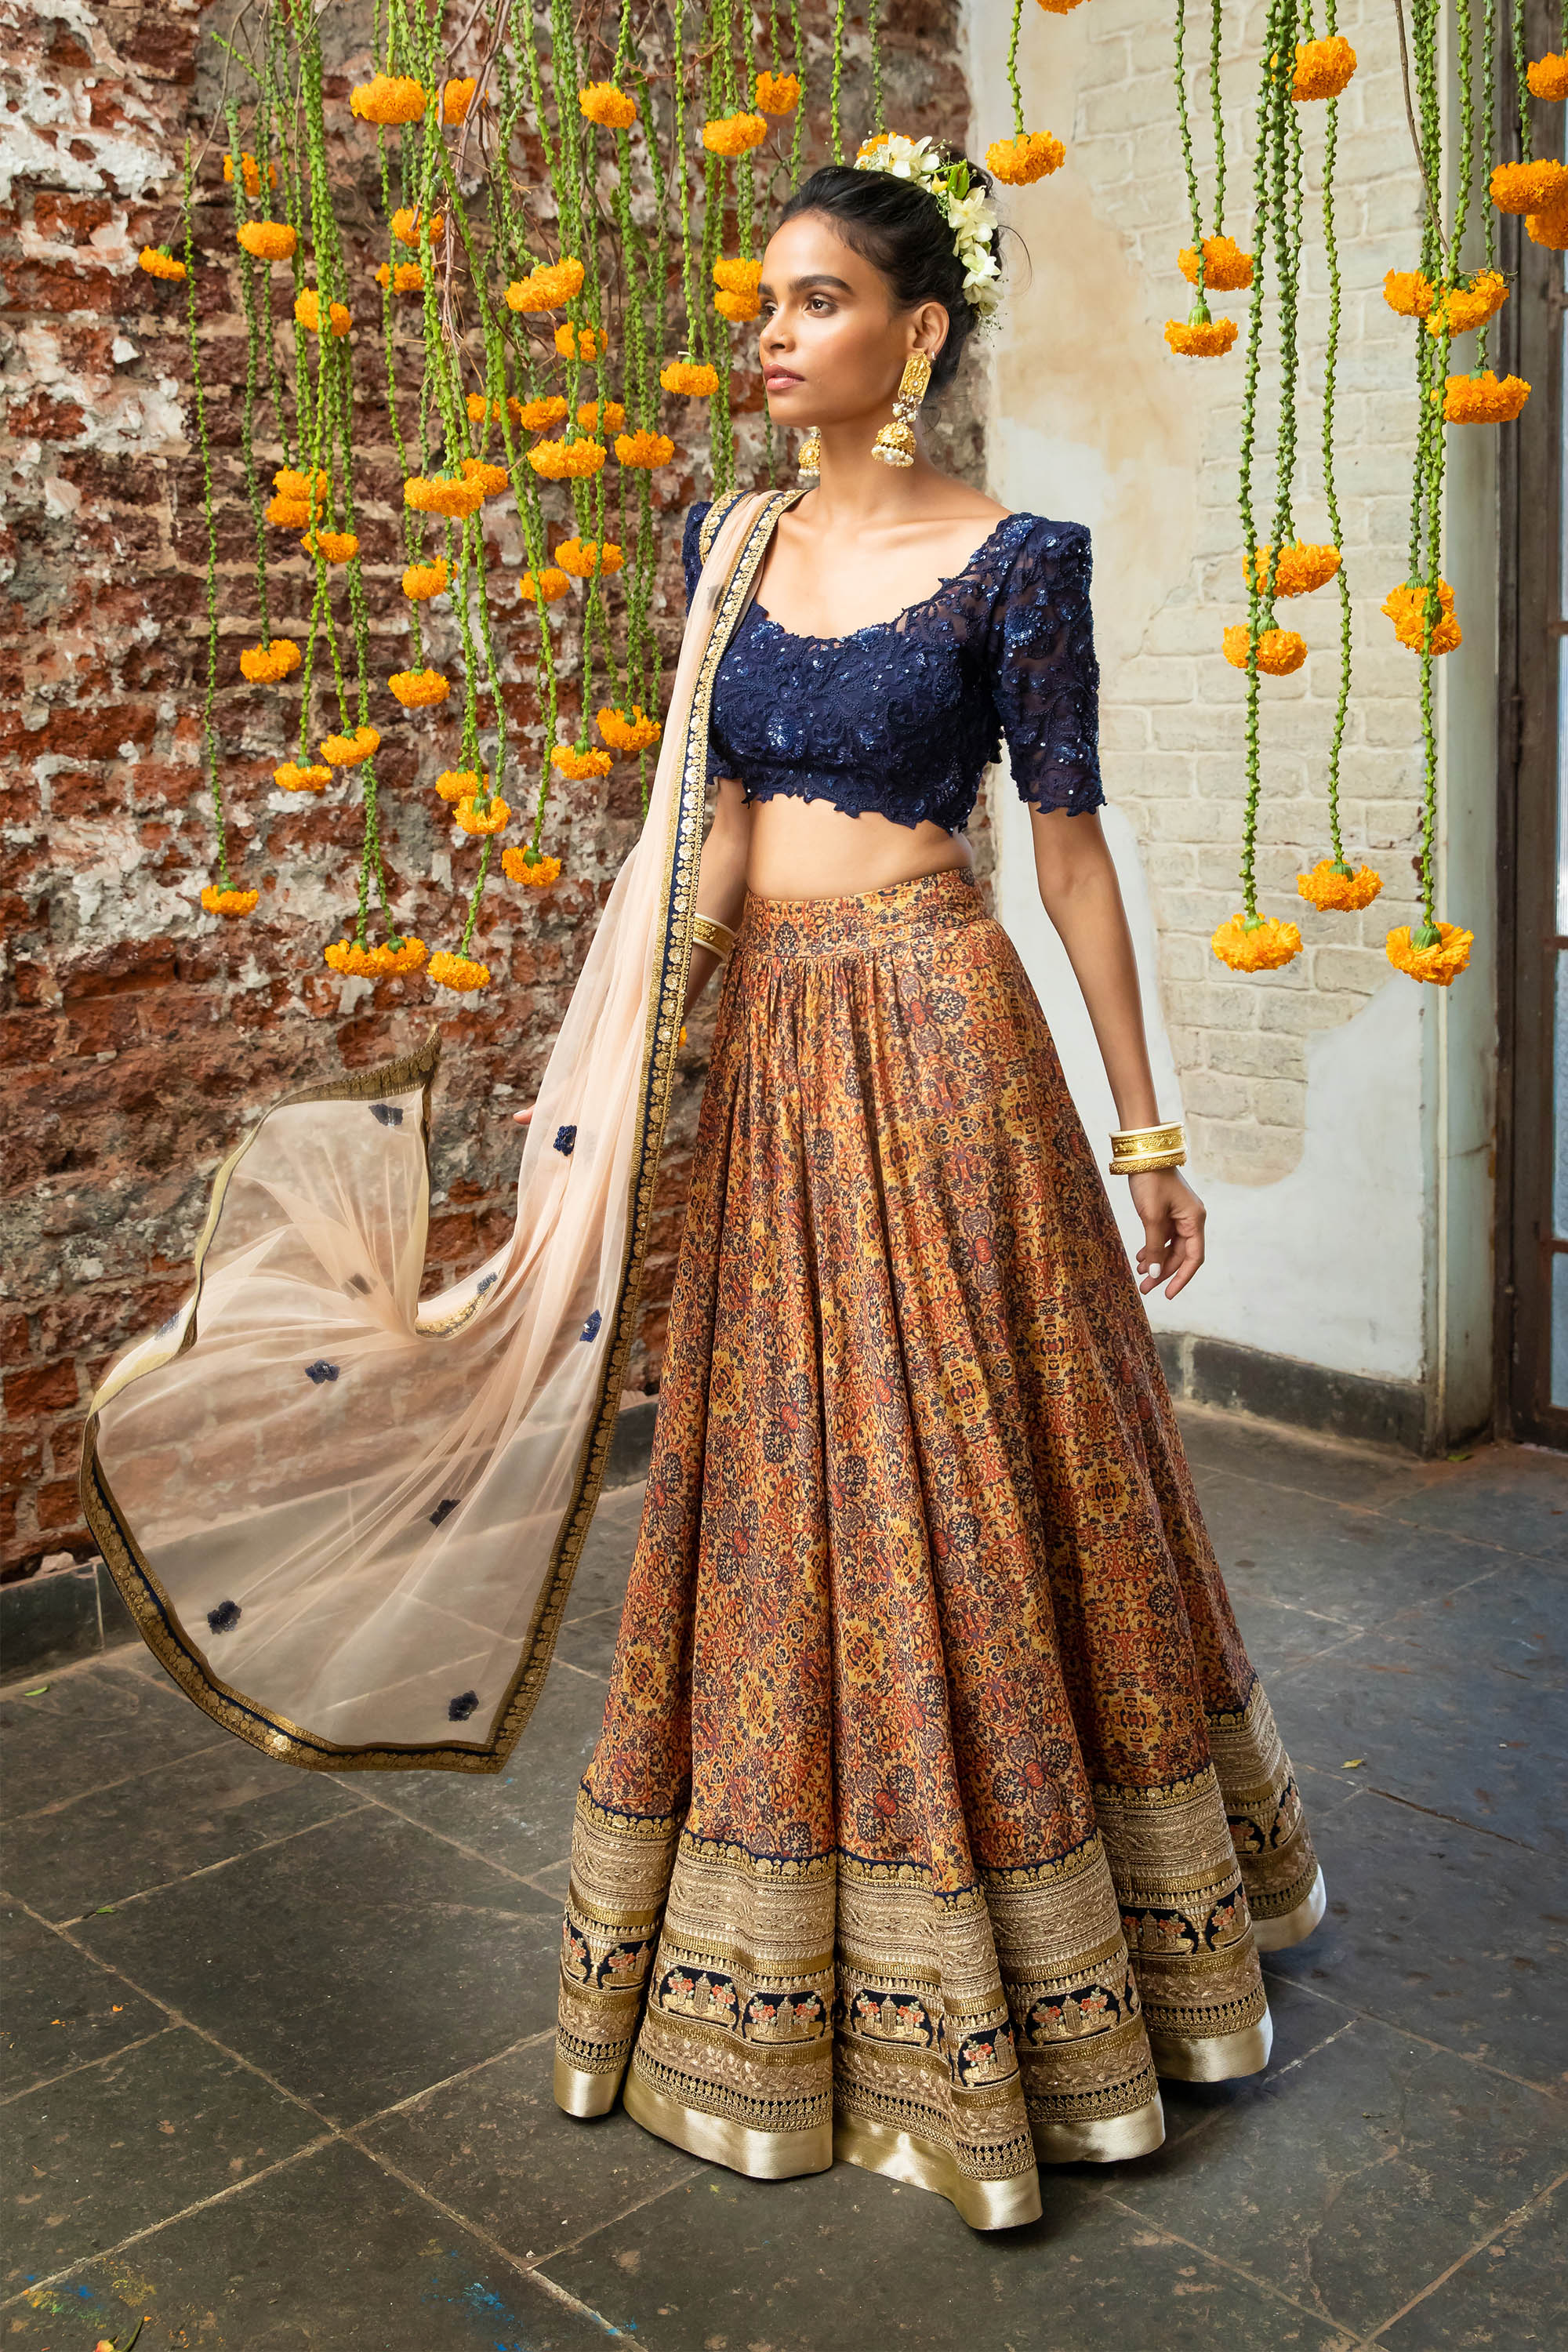 Navy Blue & Floral Lehenga FRONT